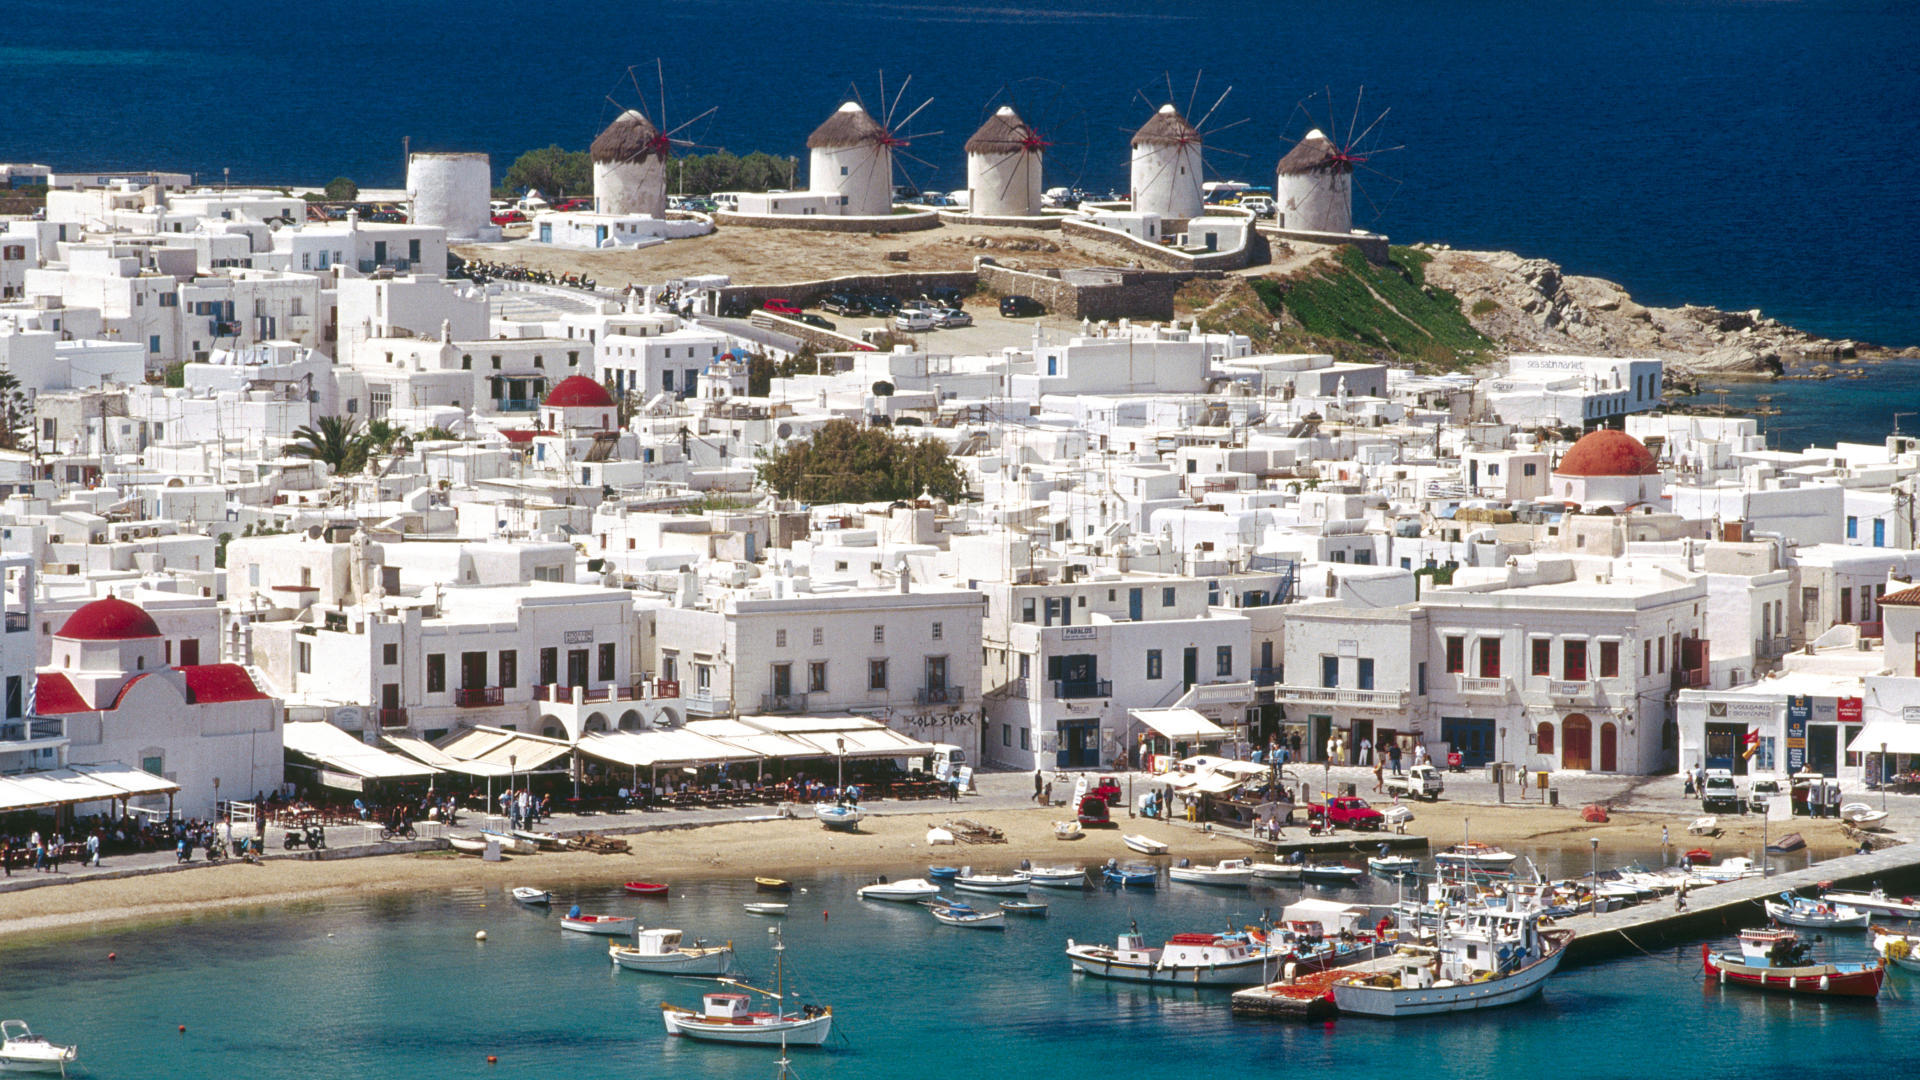 mykonos-greece-cyclades-background-travel-image-149733